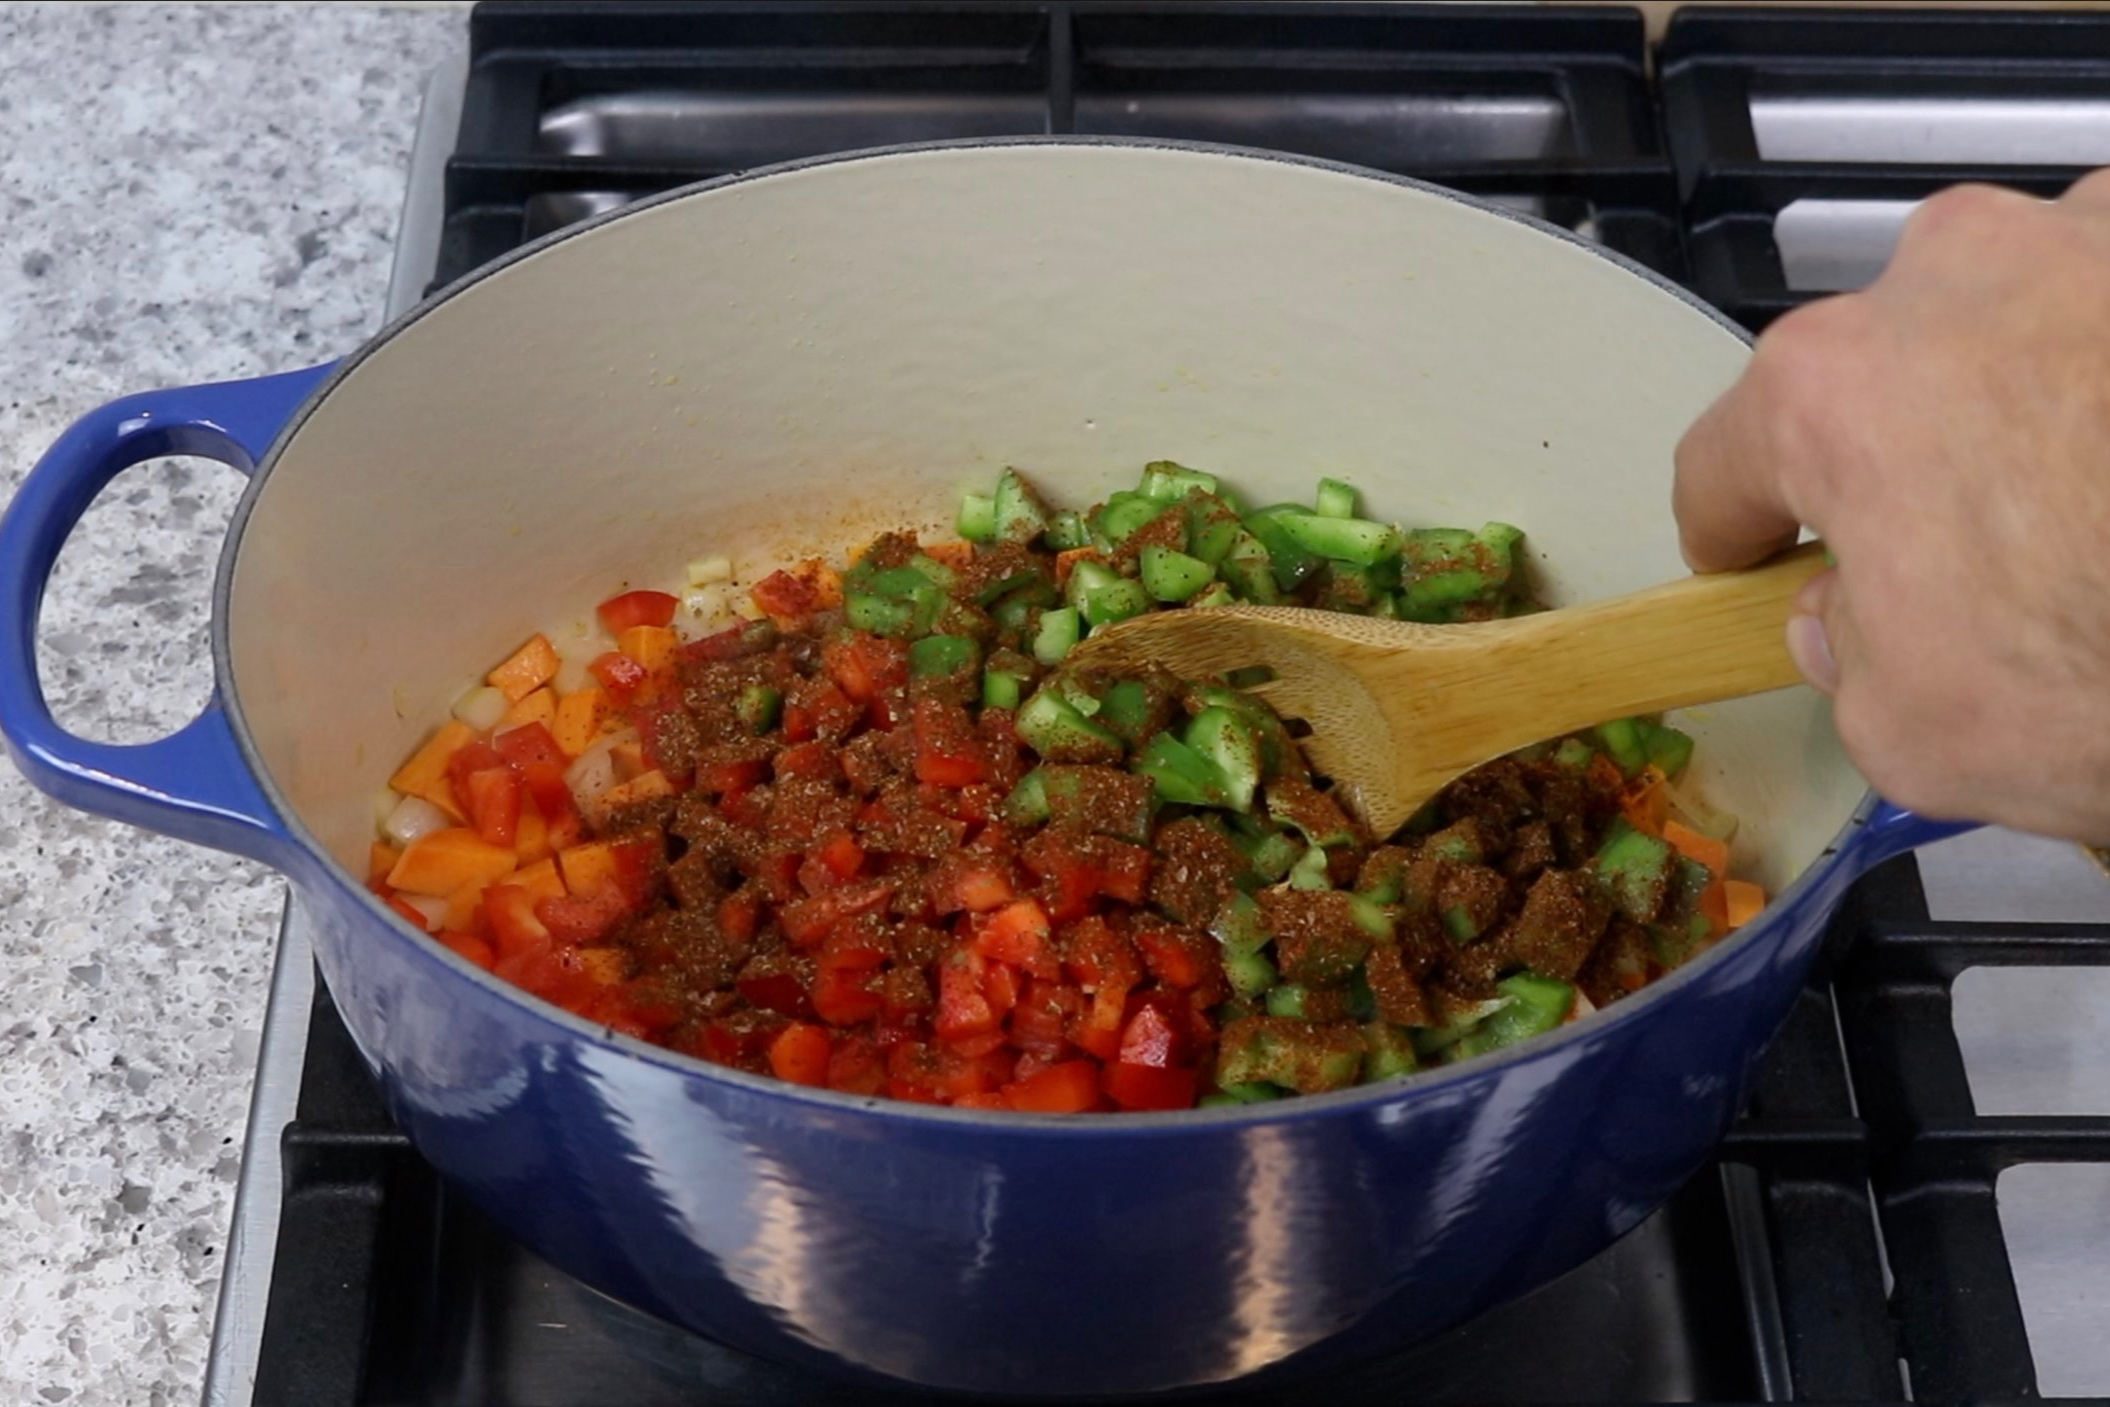 3. Add the garlic, red and green bell peppers, and southwest seasoning mixture. Sauté for 3 minutes. -